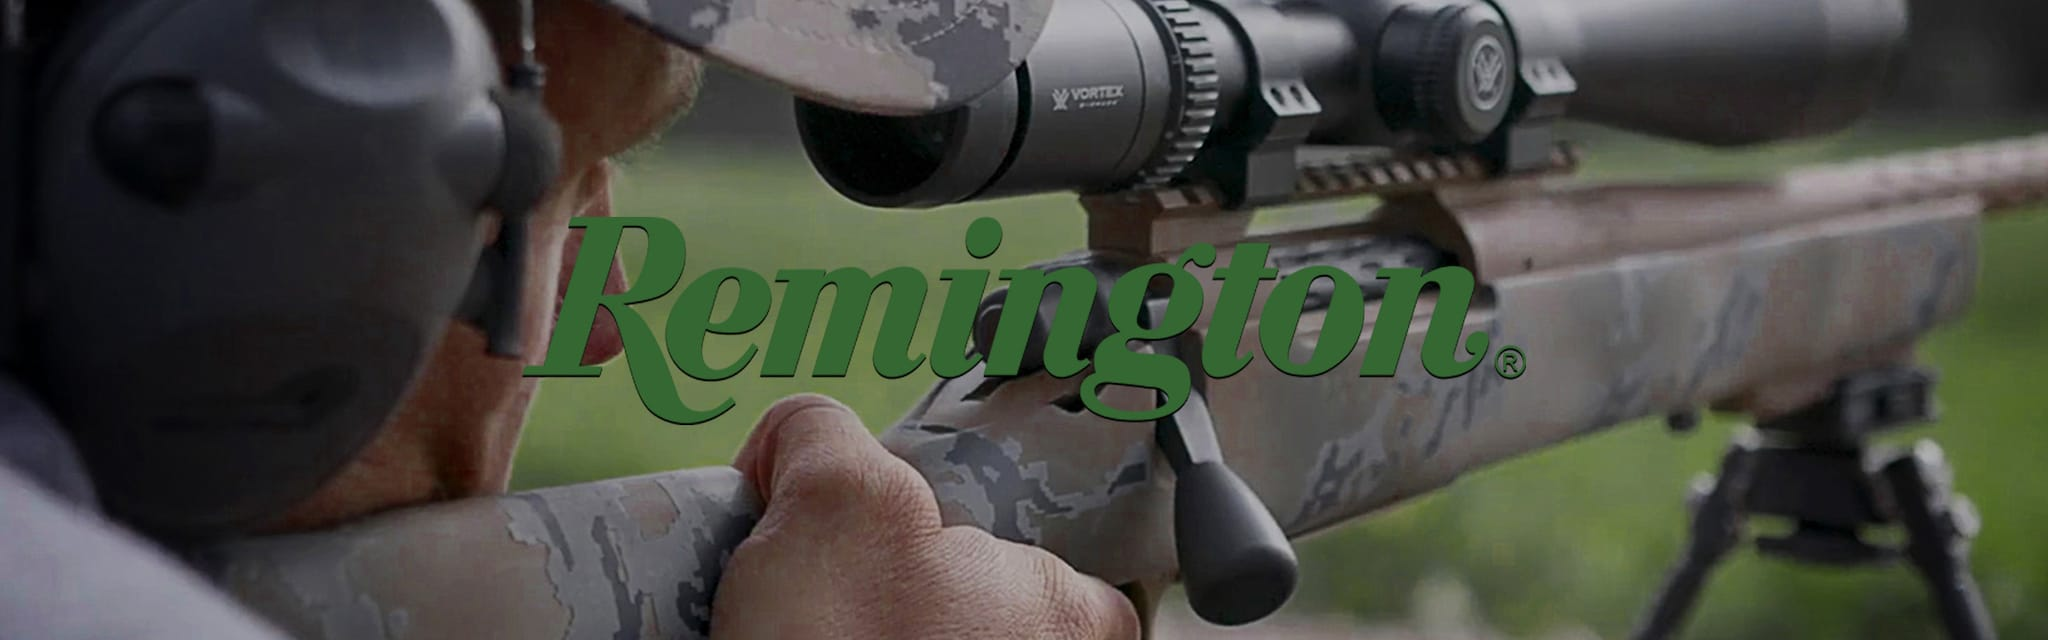 Remington brand image